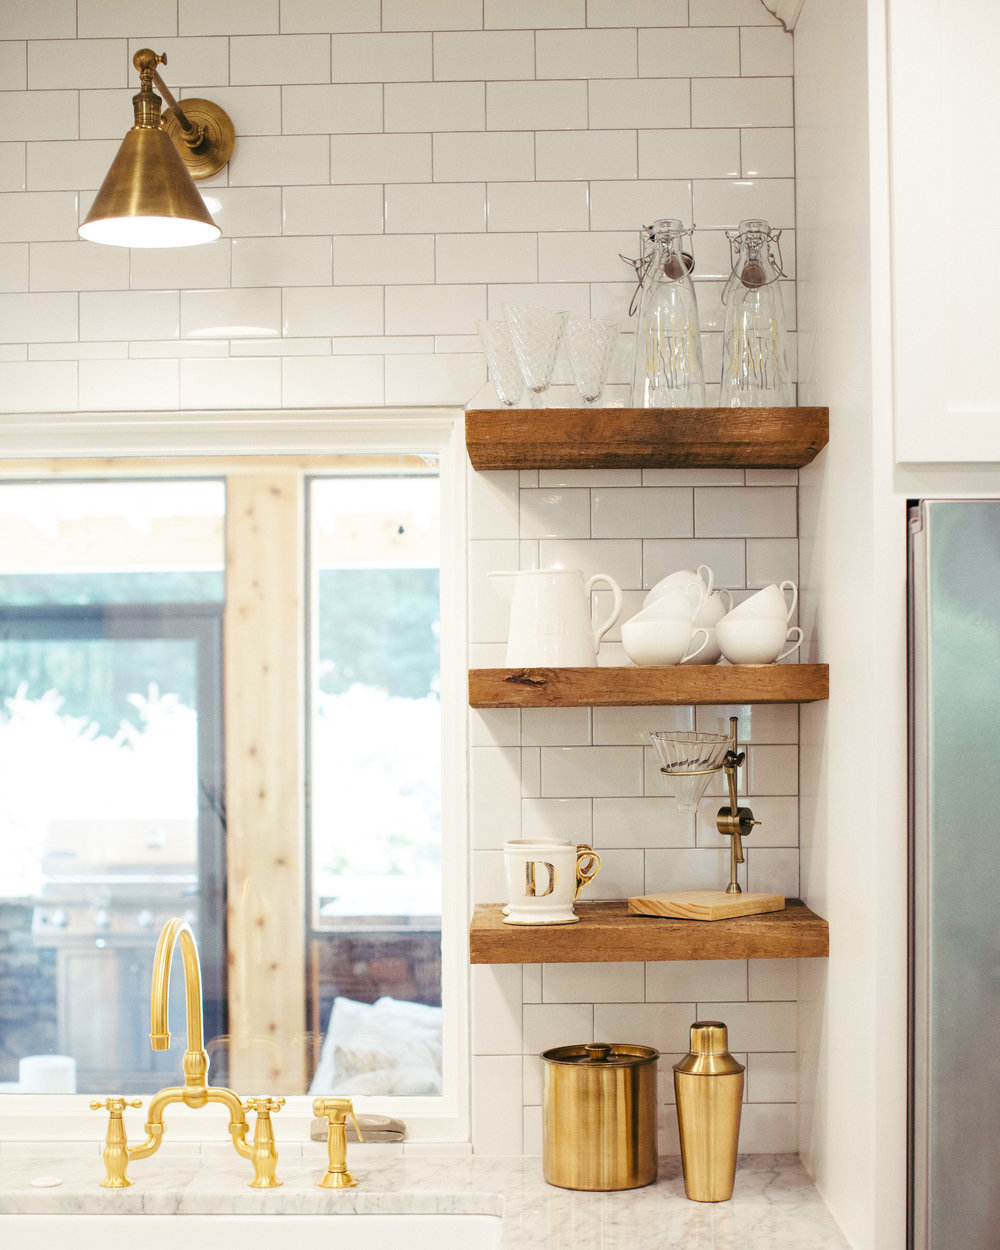 R e a l i t y: my kitchen shelves and sink...